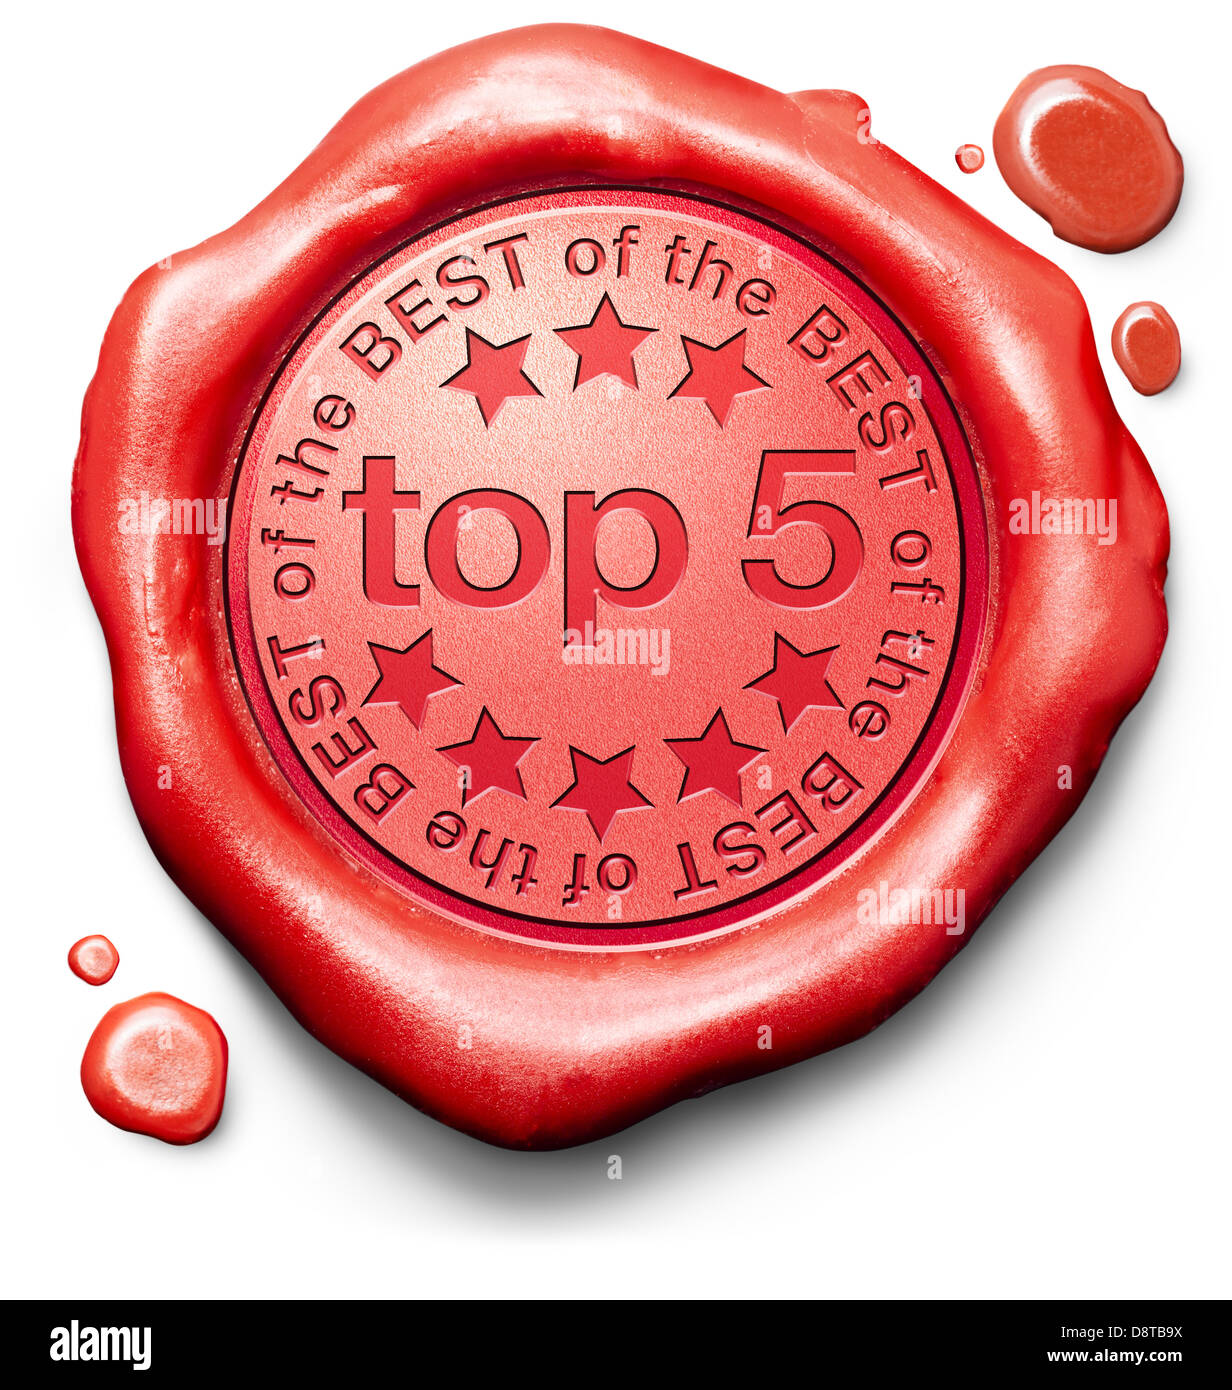 top 5 best bestseller quality label red wax seal stamp or badge